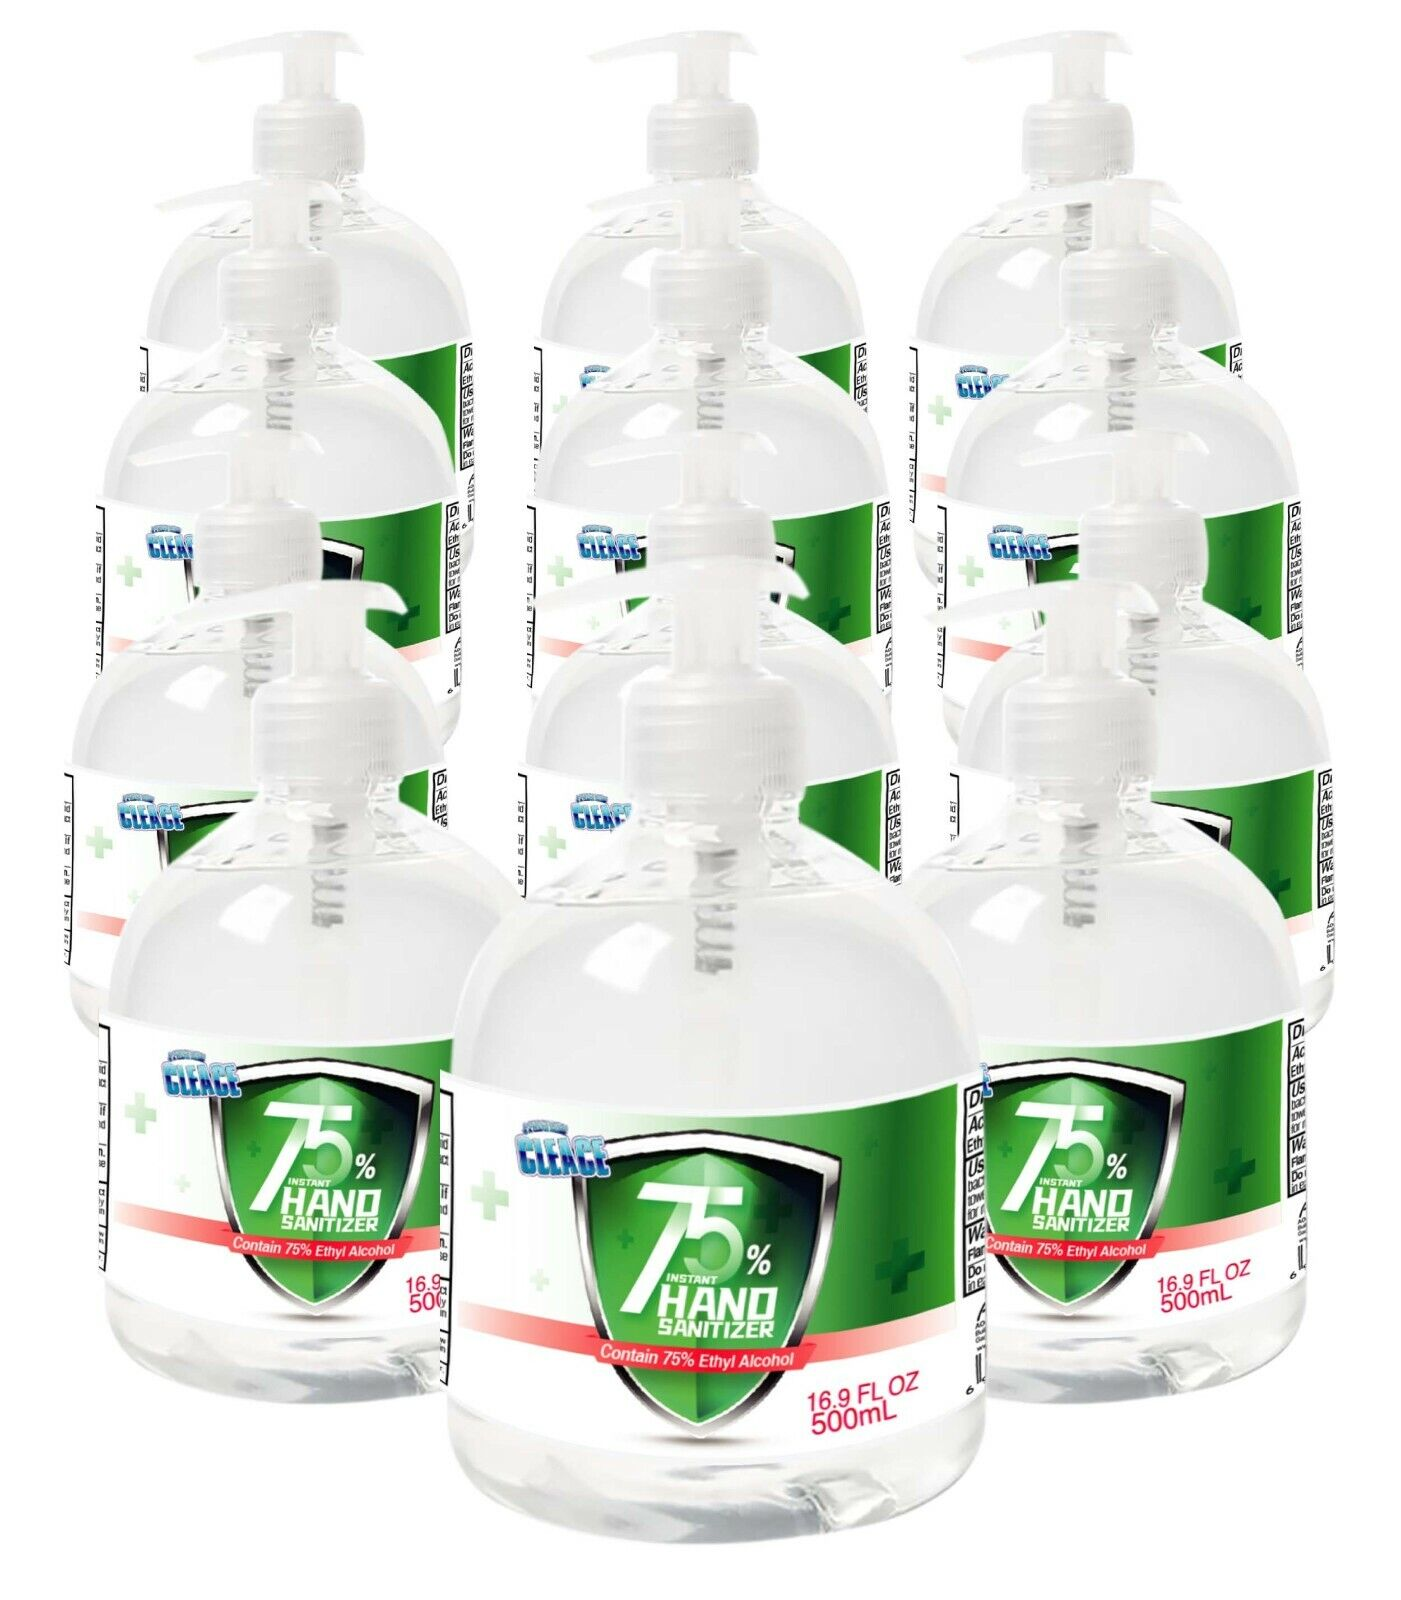 [12-PACK] Cleace Advanced 75% Alcohol Hand Sanitizer Gel, Large 16.9 Fl. Oz x 12 Hand Sanitizers